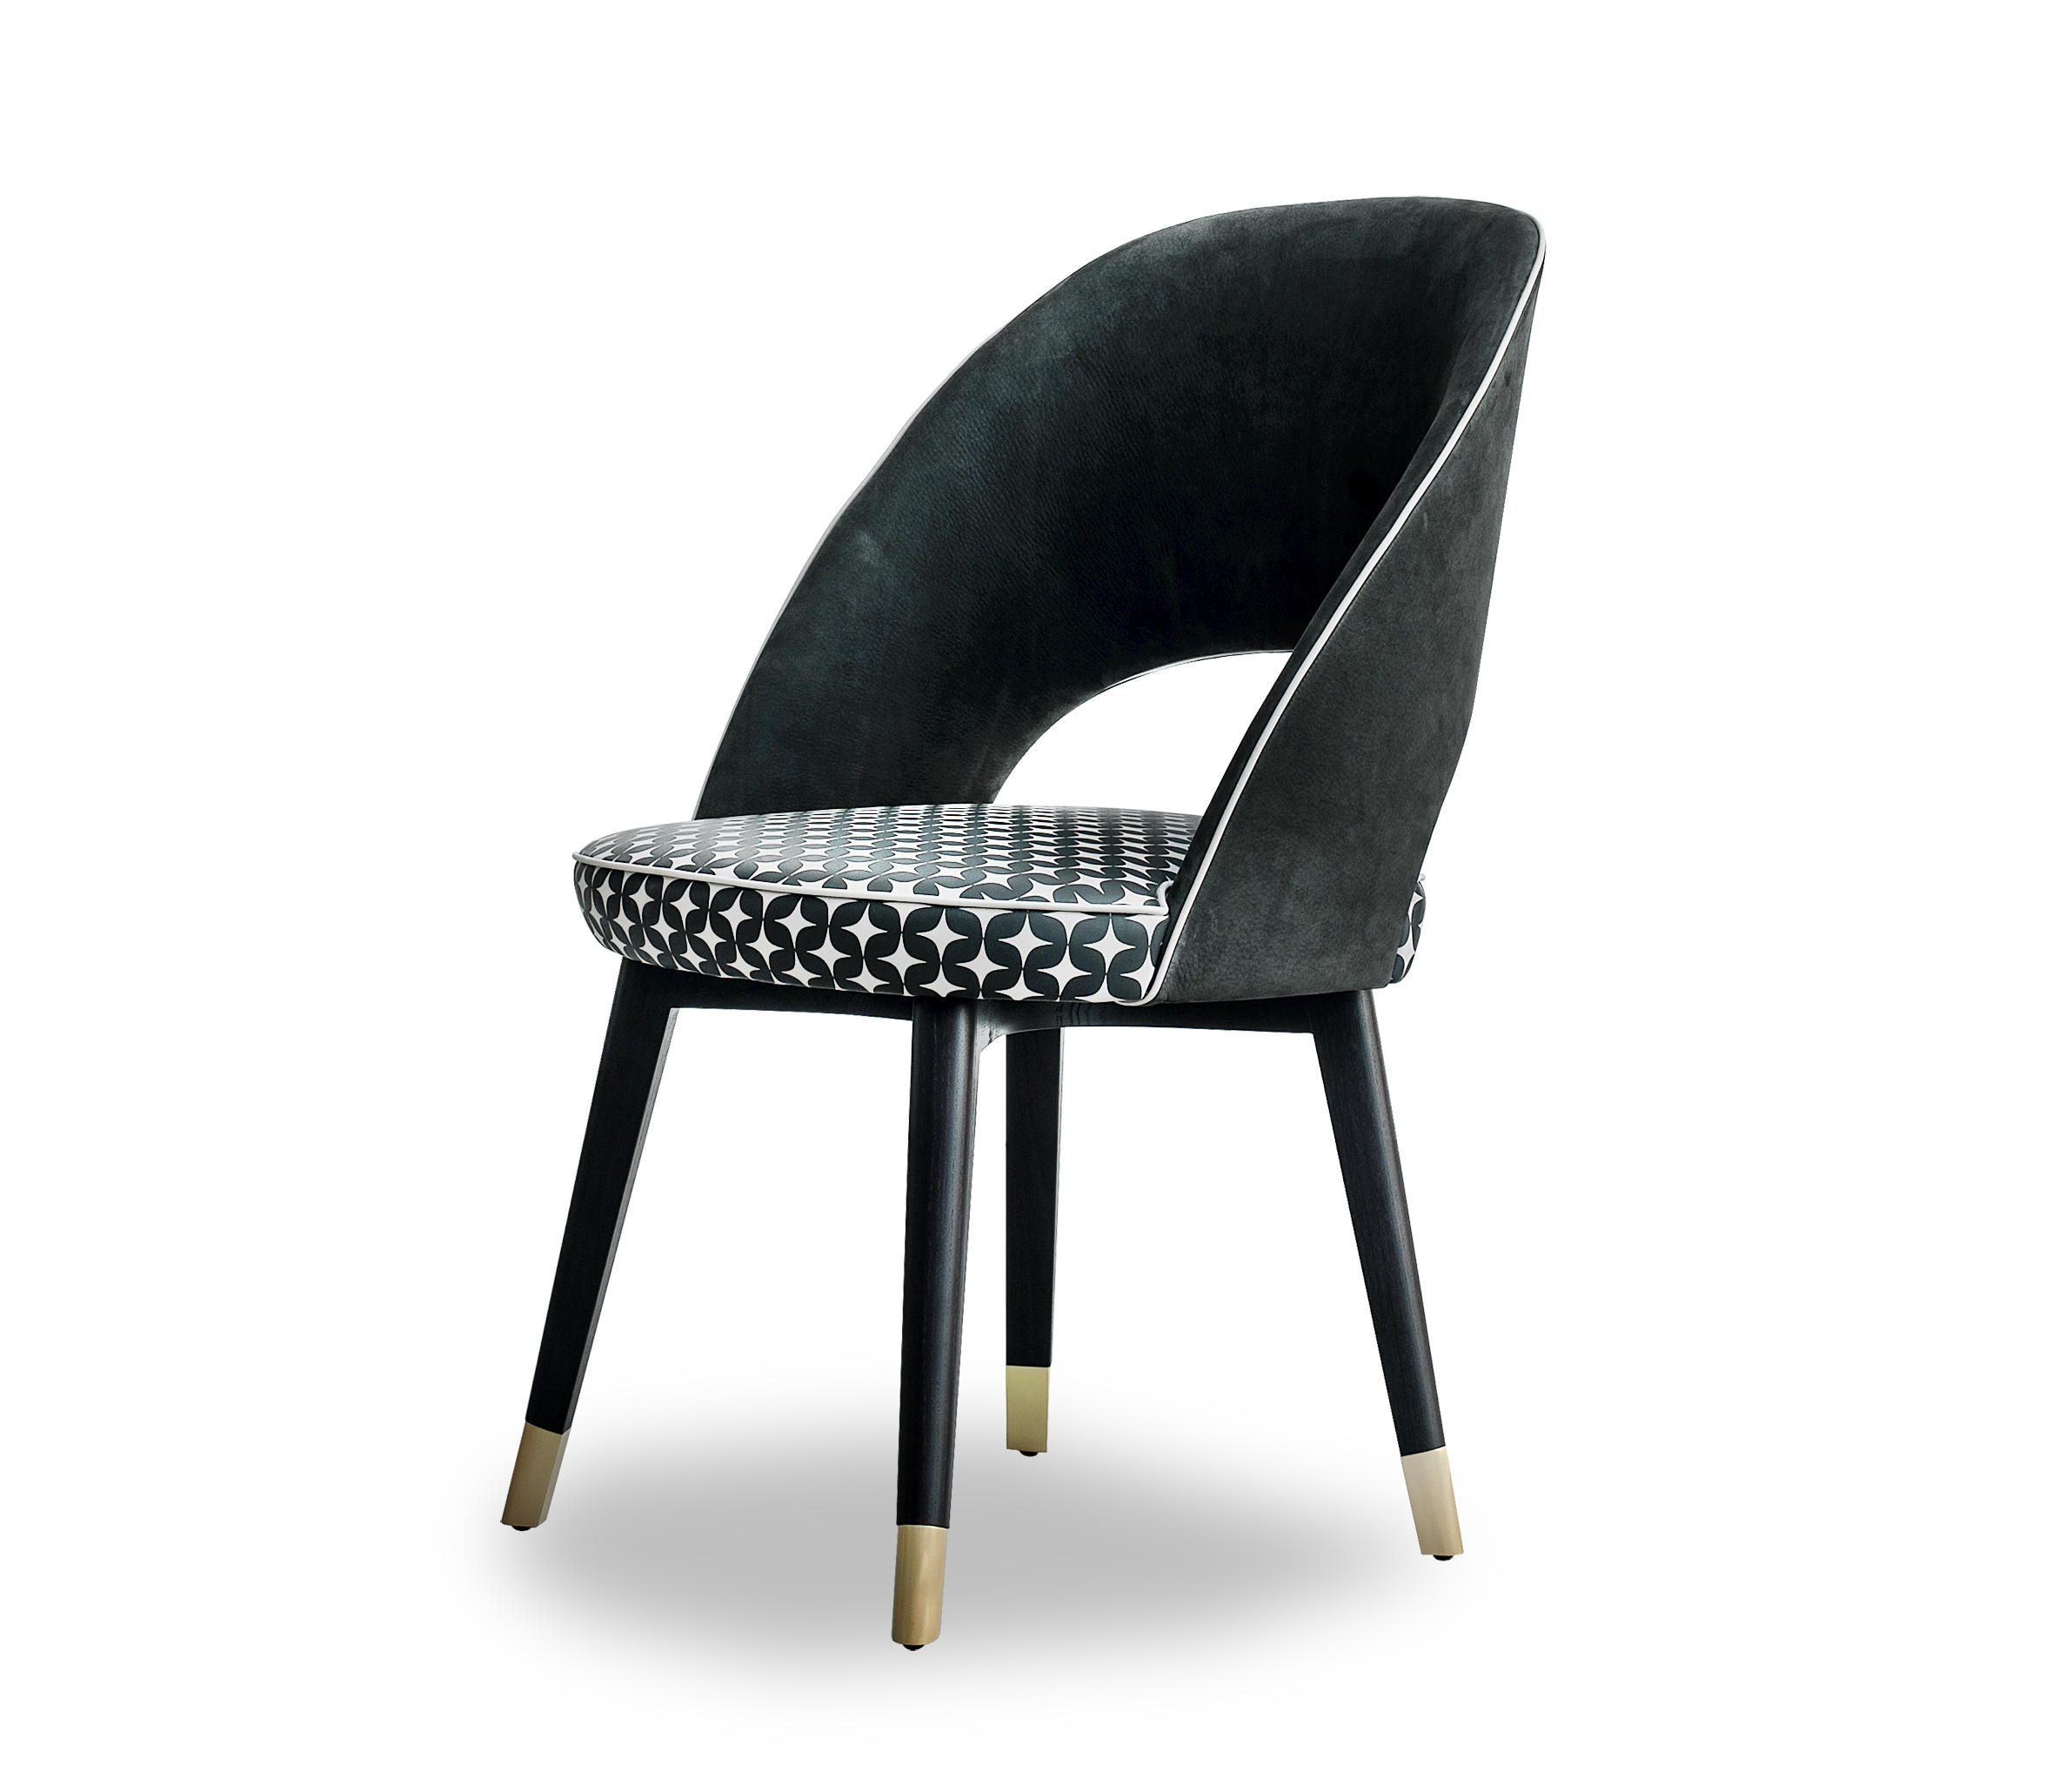 COLETTE CHAIR - Designer Restaurant chairs from Baxter ✓ all